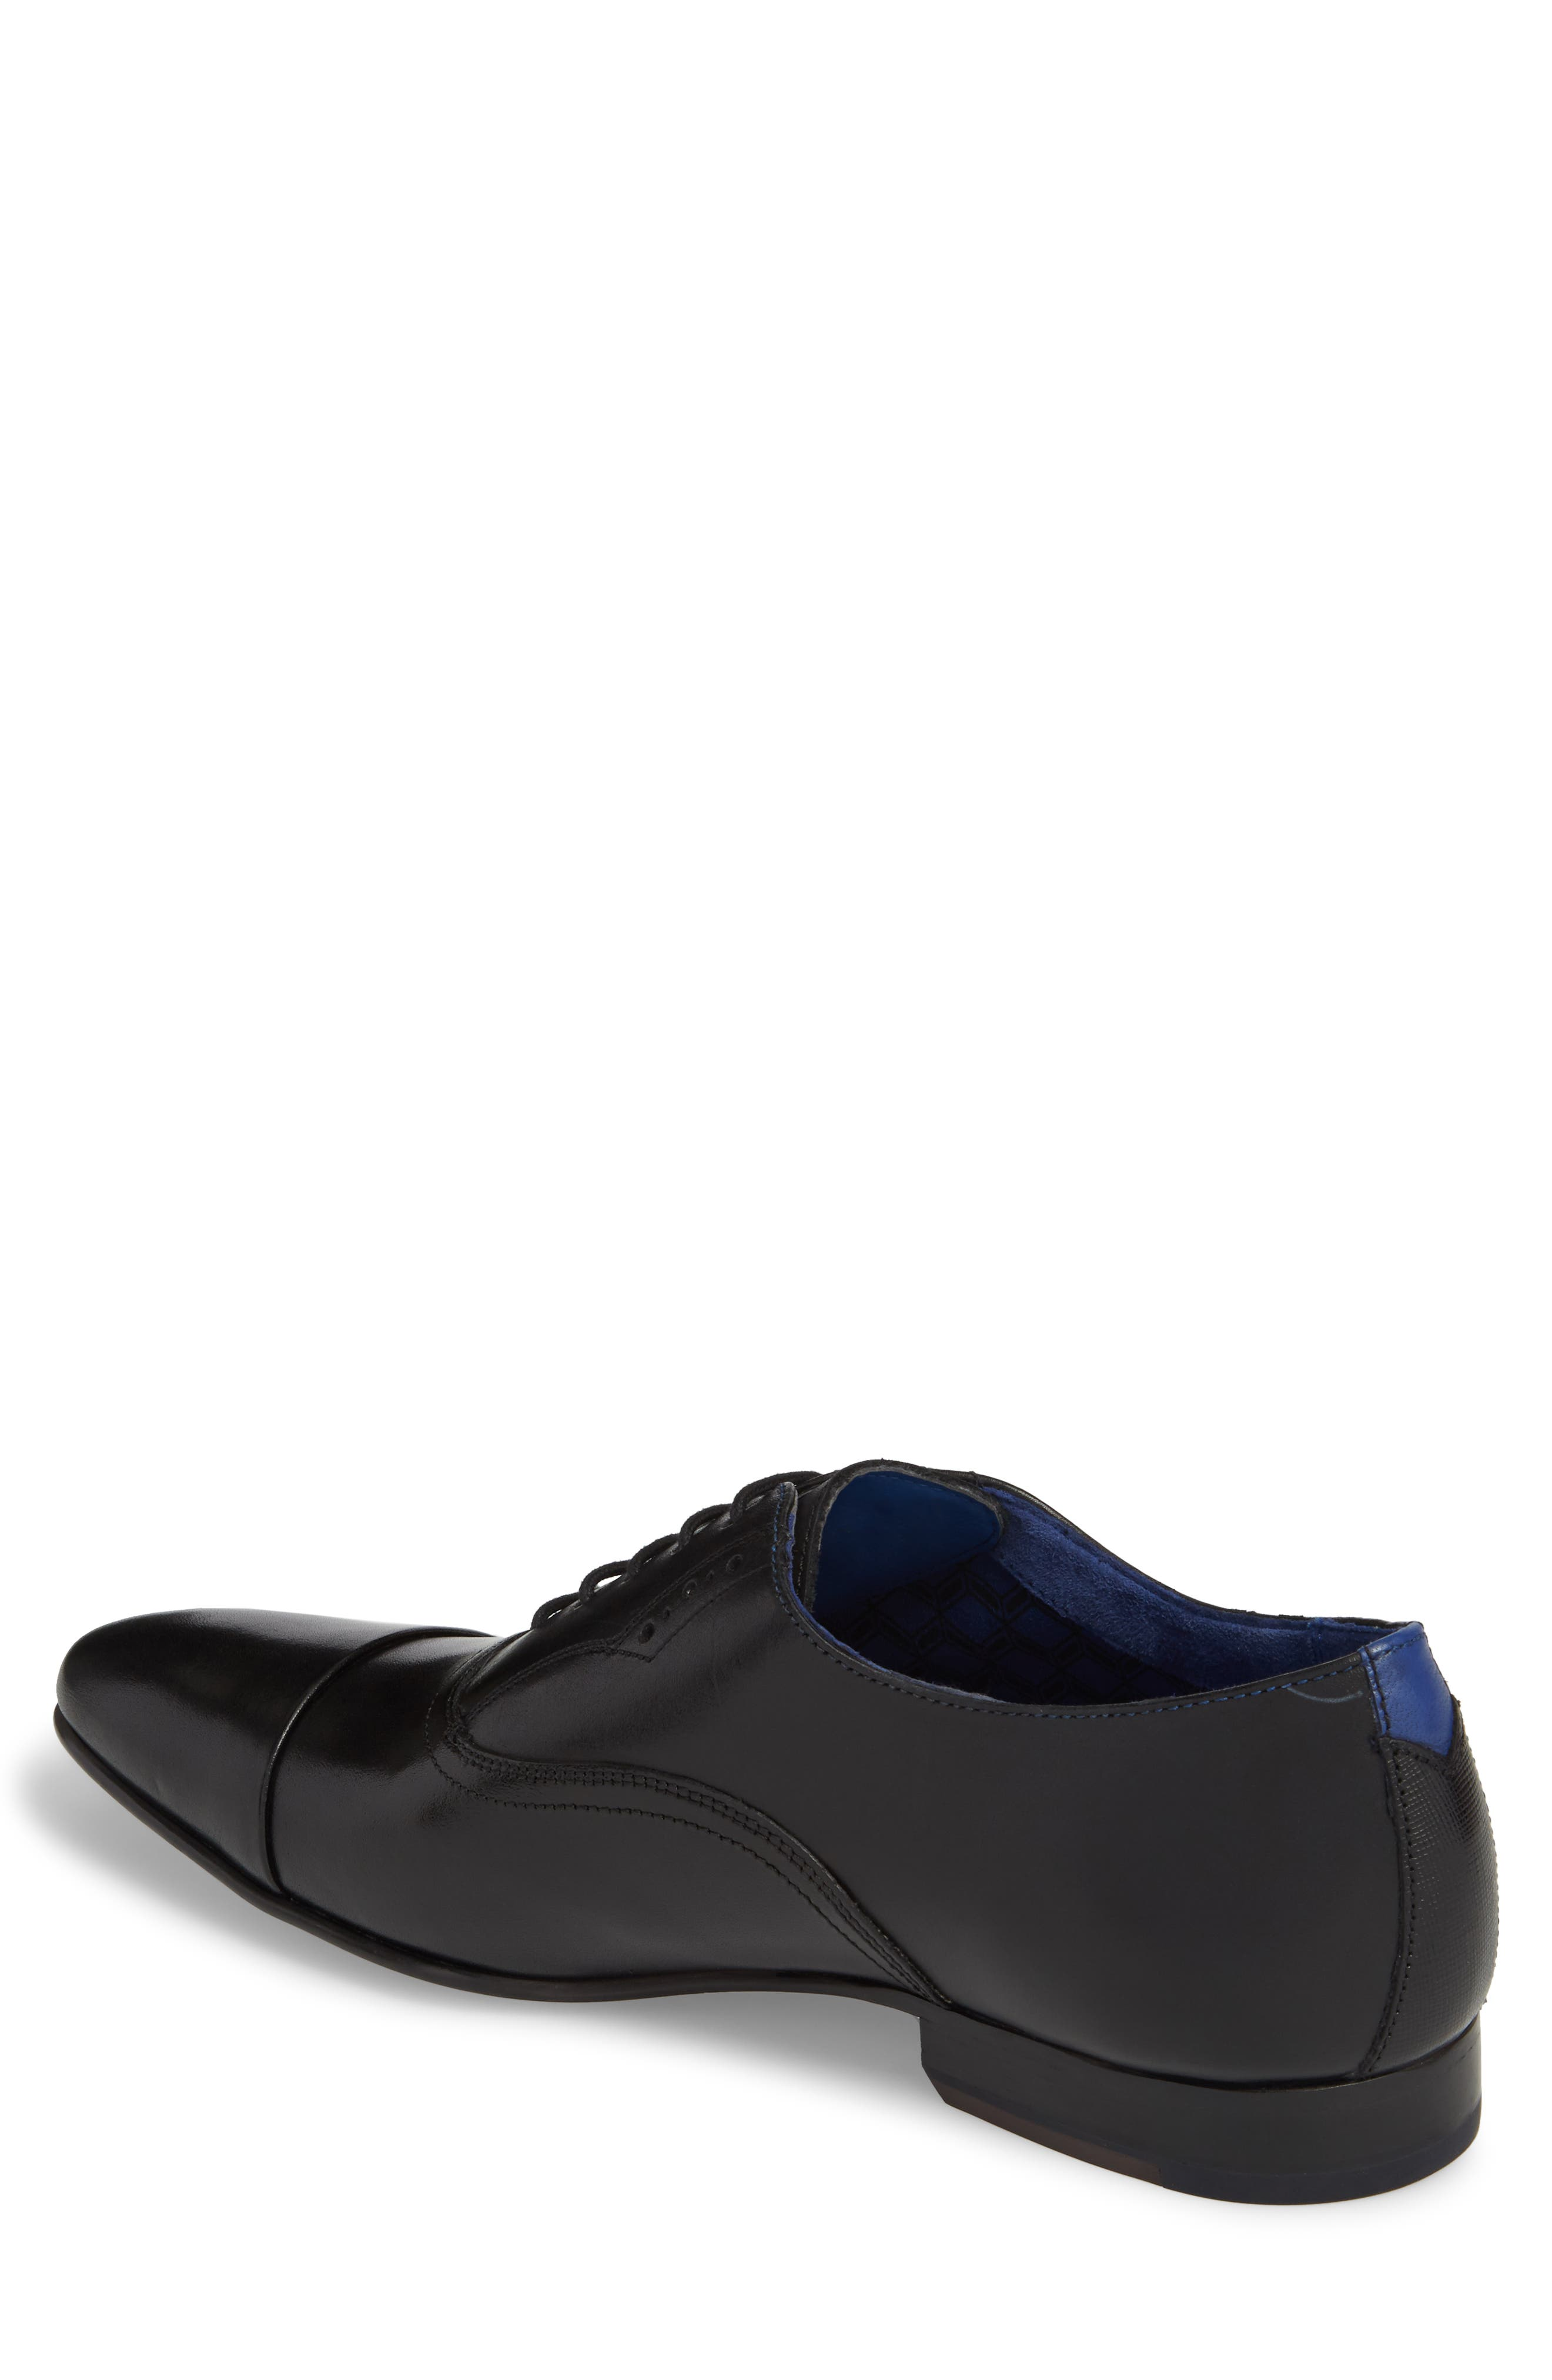 Murain Cap Toe Oxford,                             Alternate thumbnail 4, color,